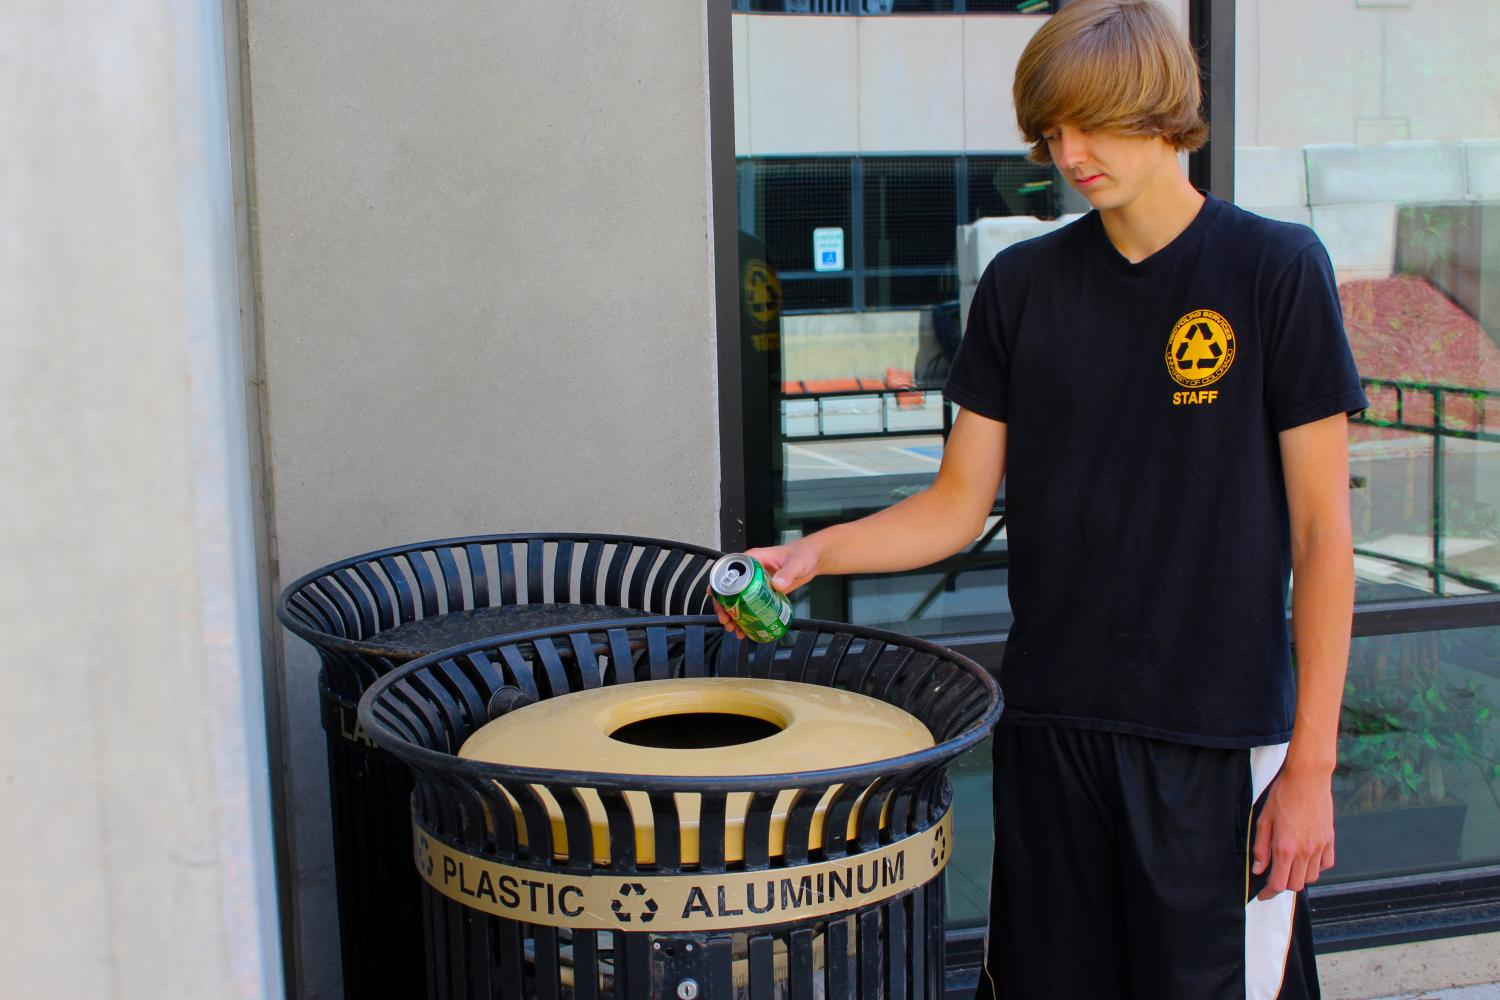 A CU Boulder student Recycles in the right bin